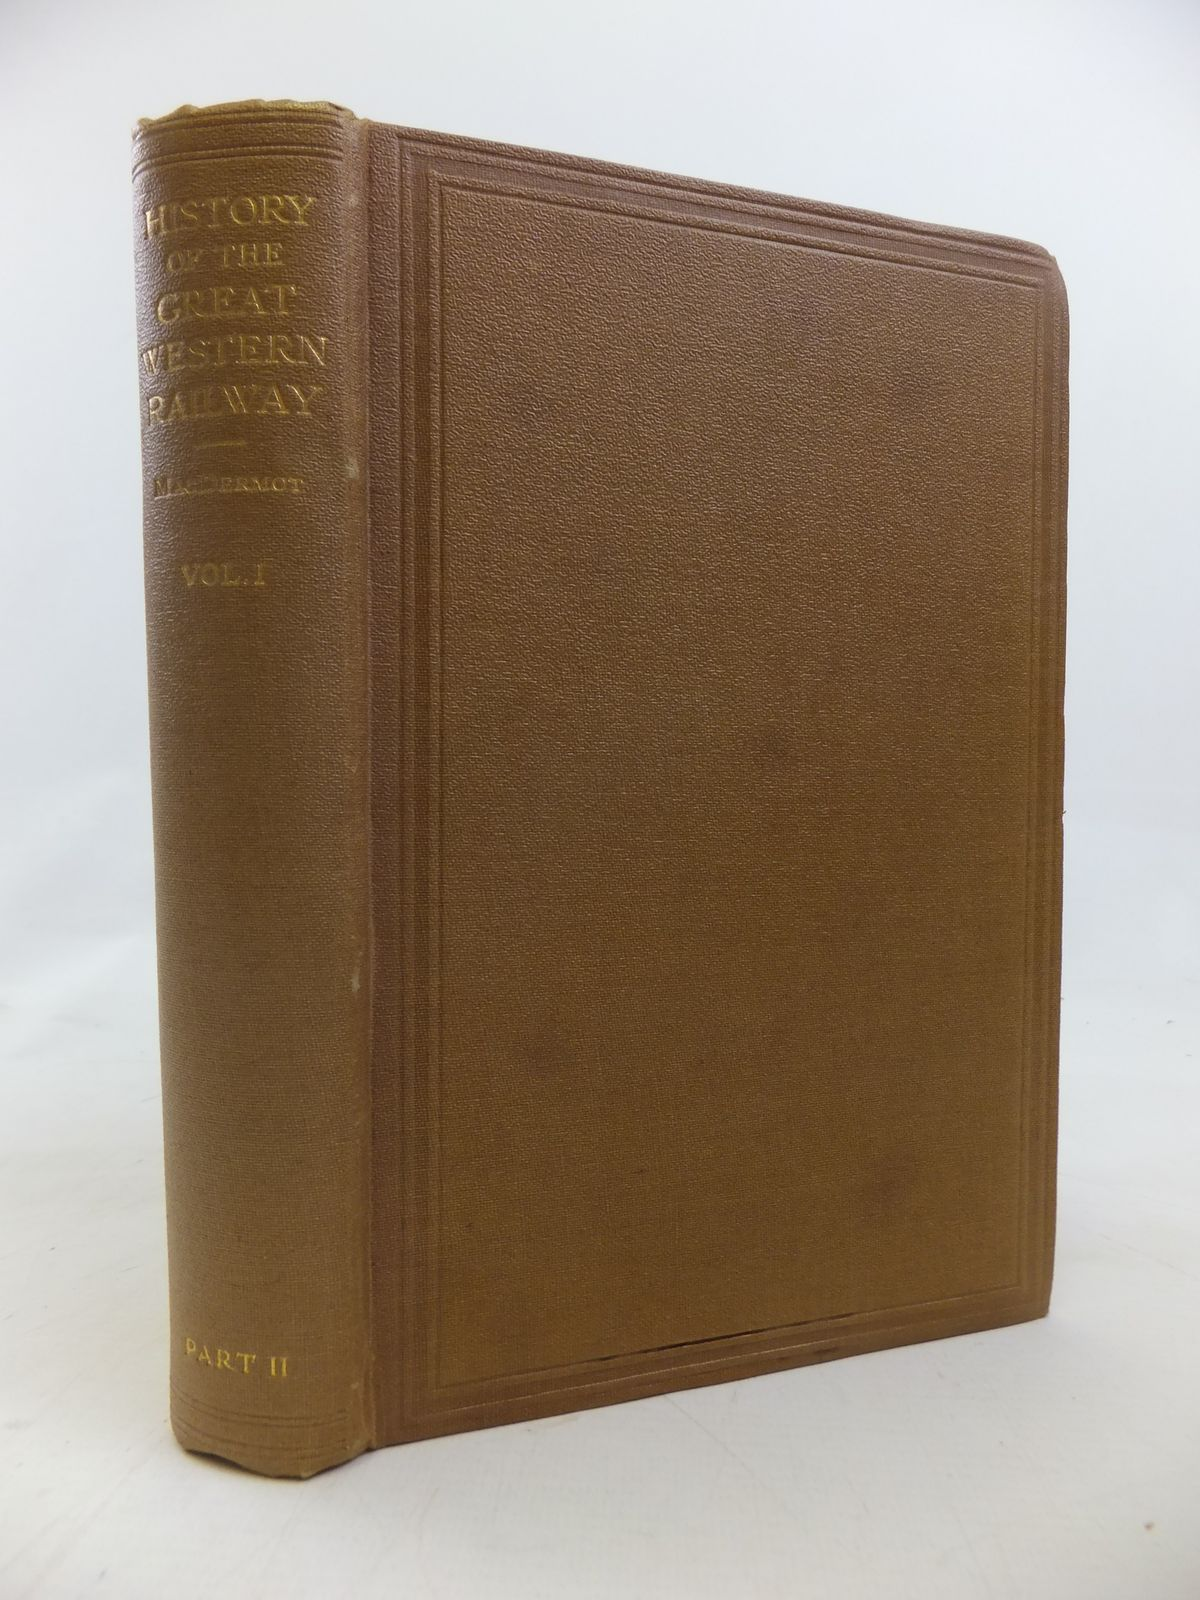 Photo of HISTORY OF THE GREAT WESTERN RAILWAY VOL I 1833-1863 PART II written by MacDermot, E.T. published by Great Western Railway Company (STOCK CODE: 1810208)  for sale by Stella & Rose's Books